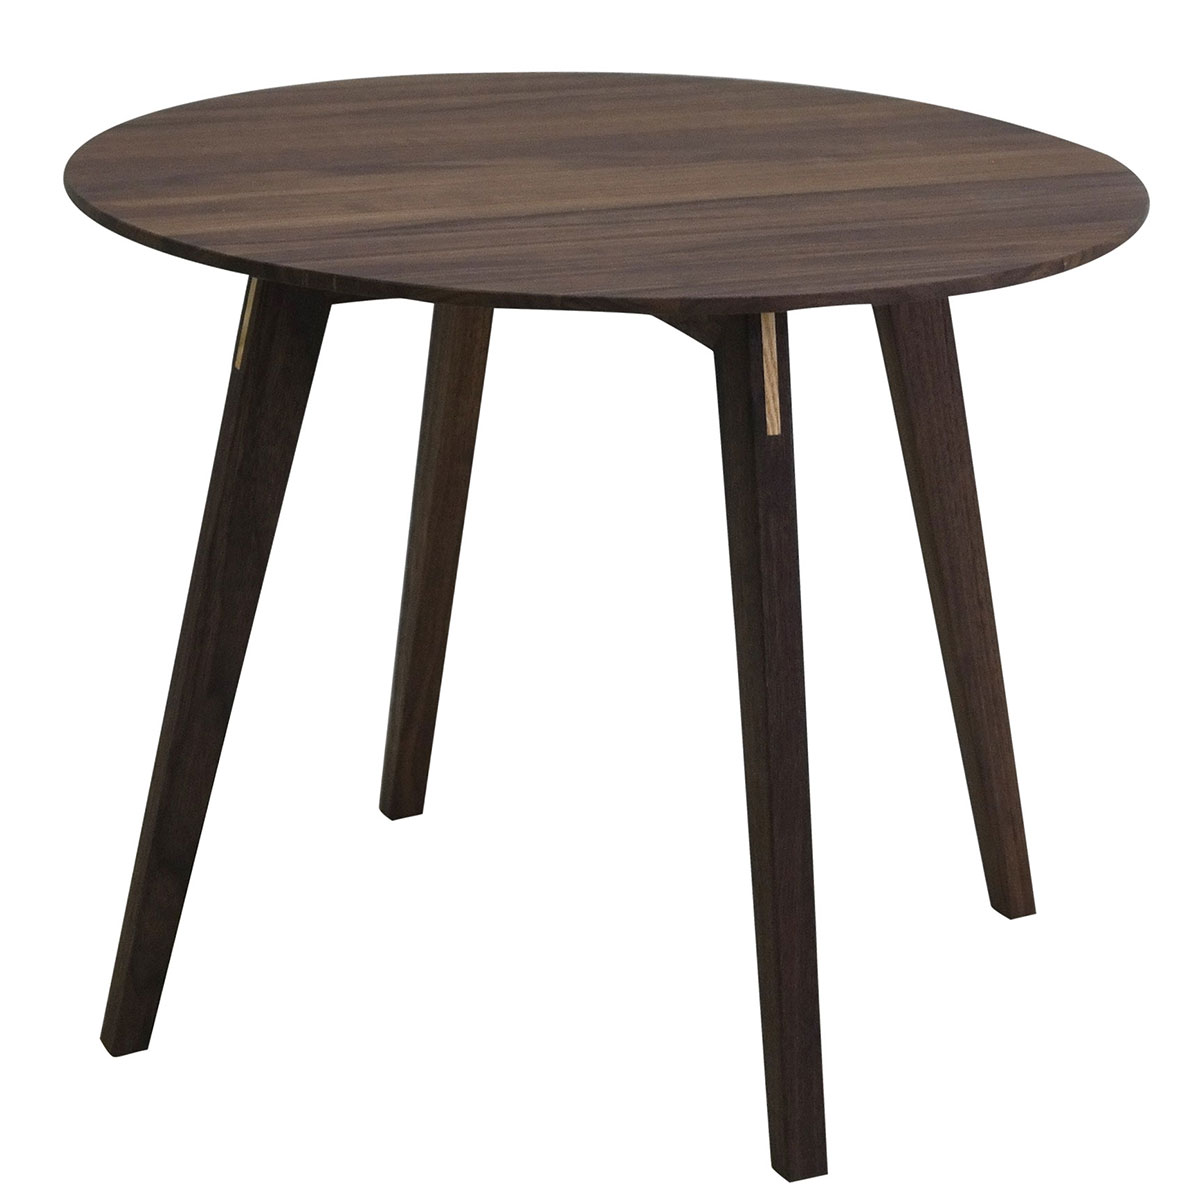 NEW Blum & Balle Circle Walnut Accent Table for GETAMA